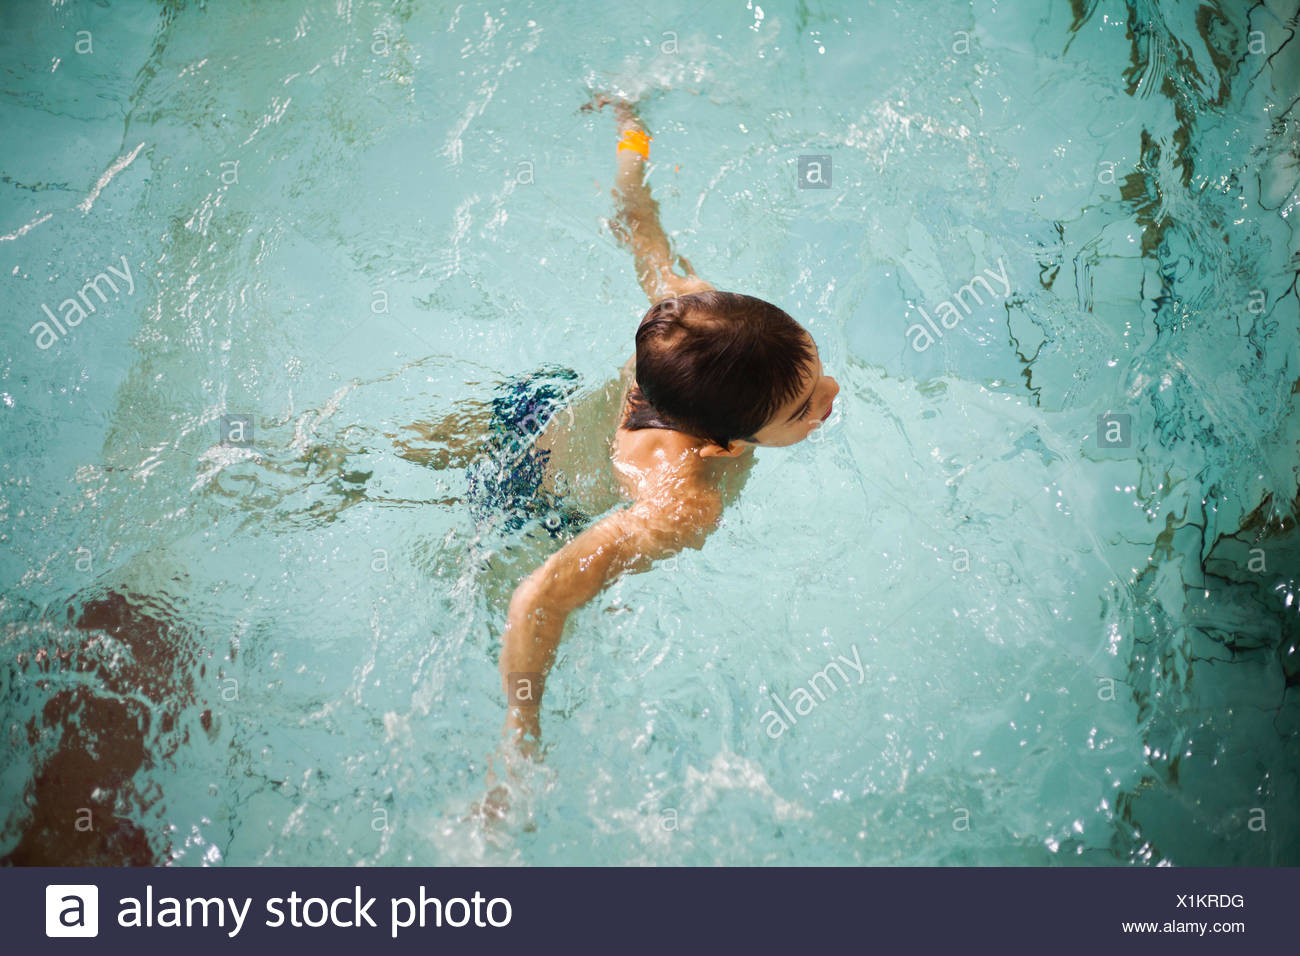 High angle view of boy treating water in swimming pool - Stock Image